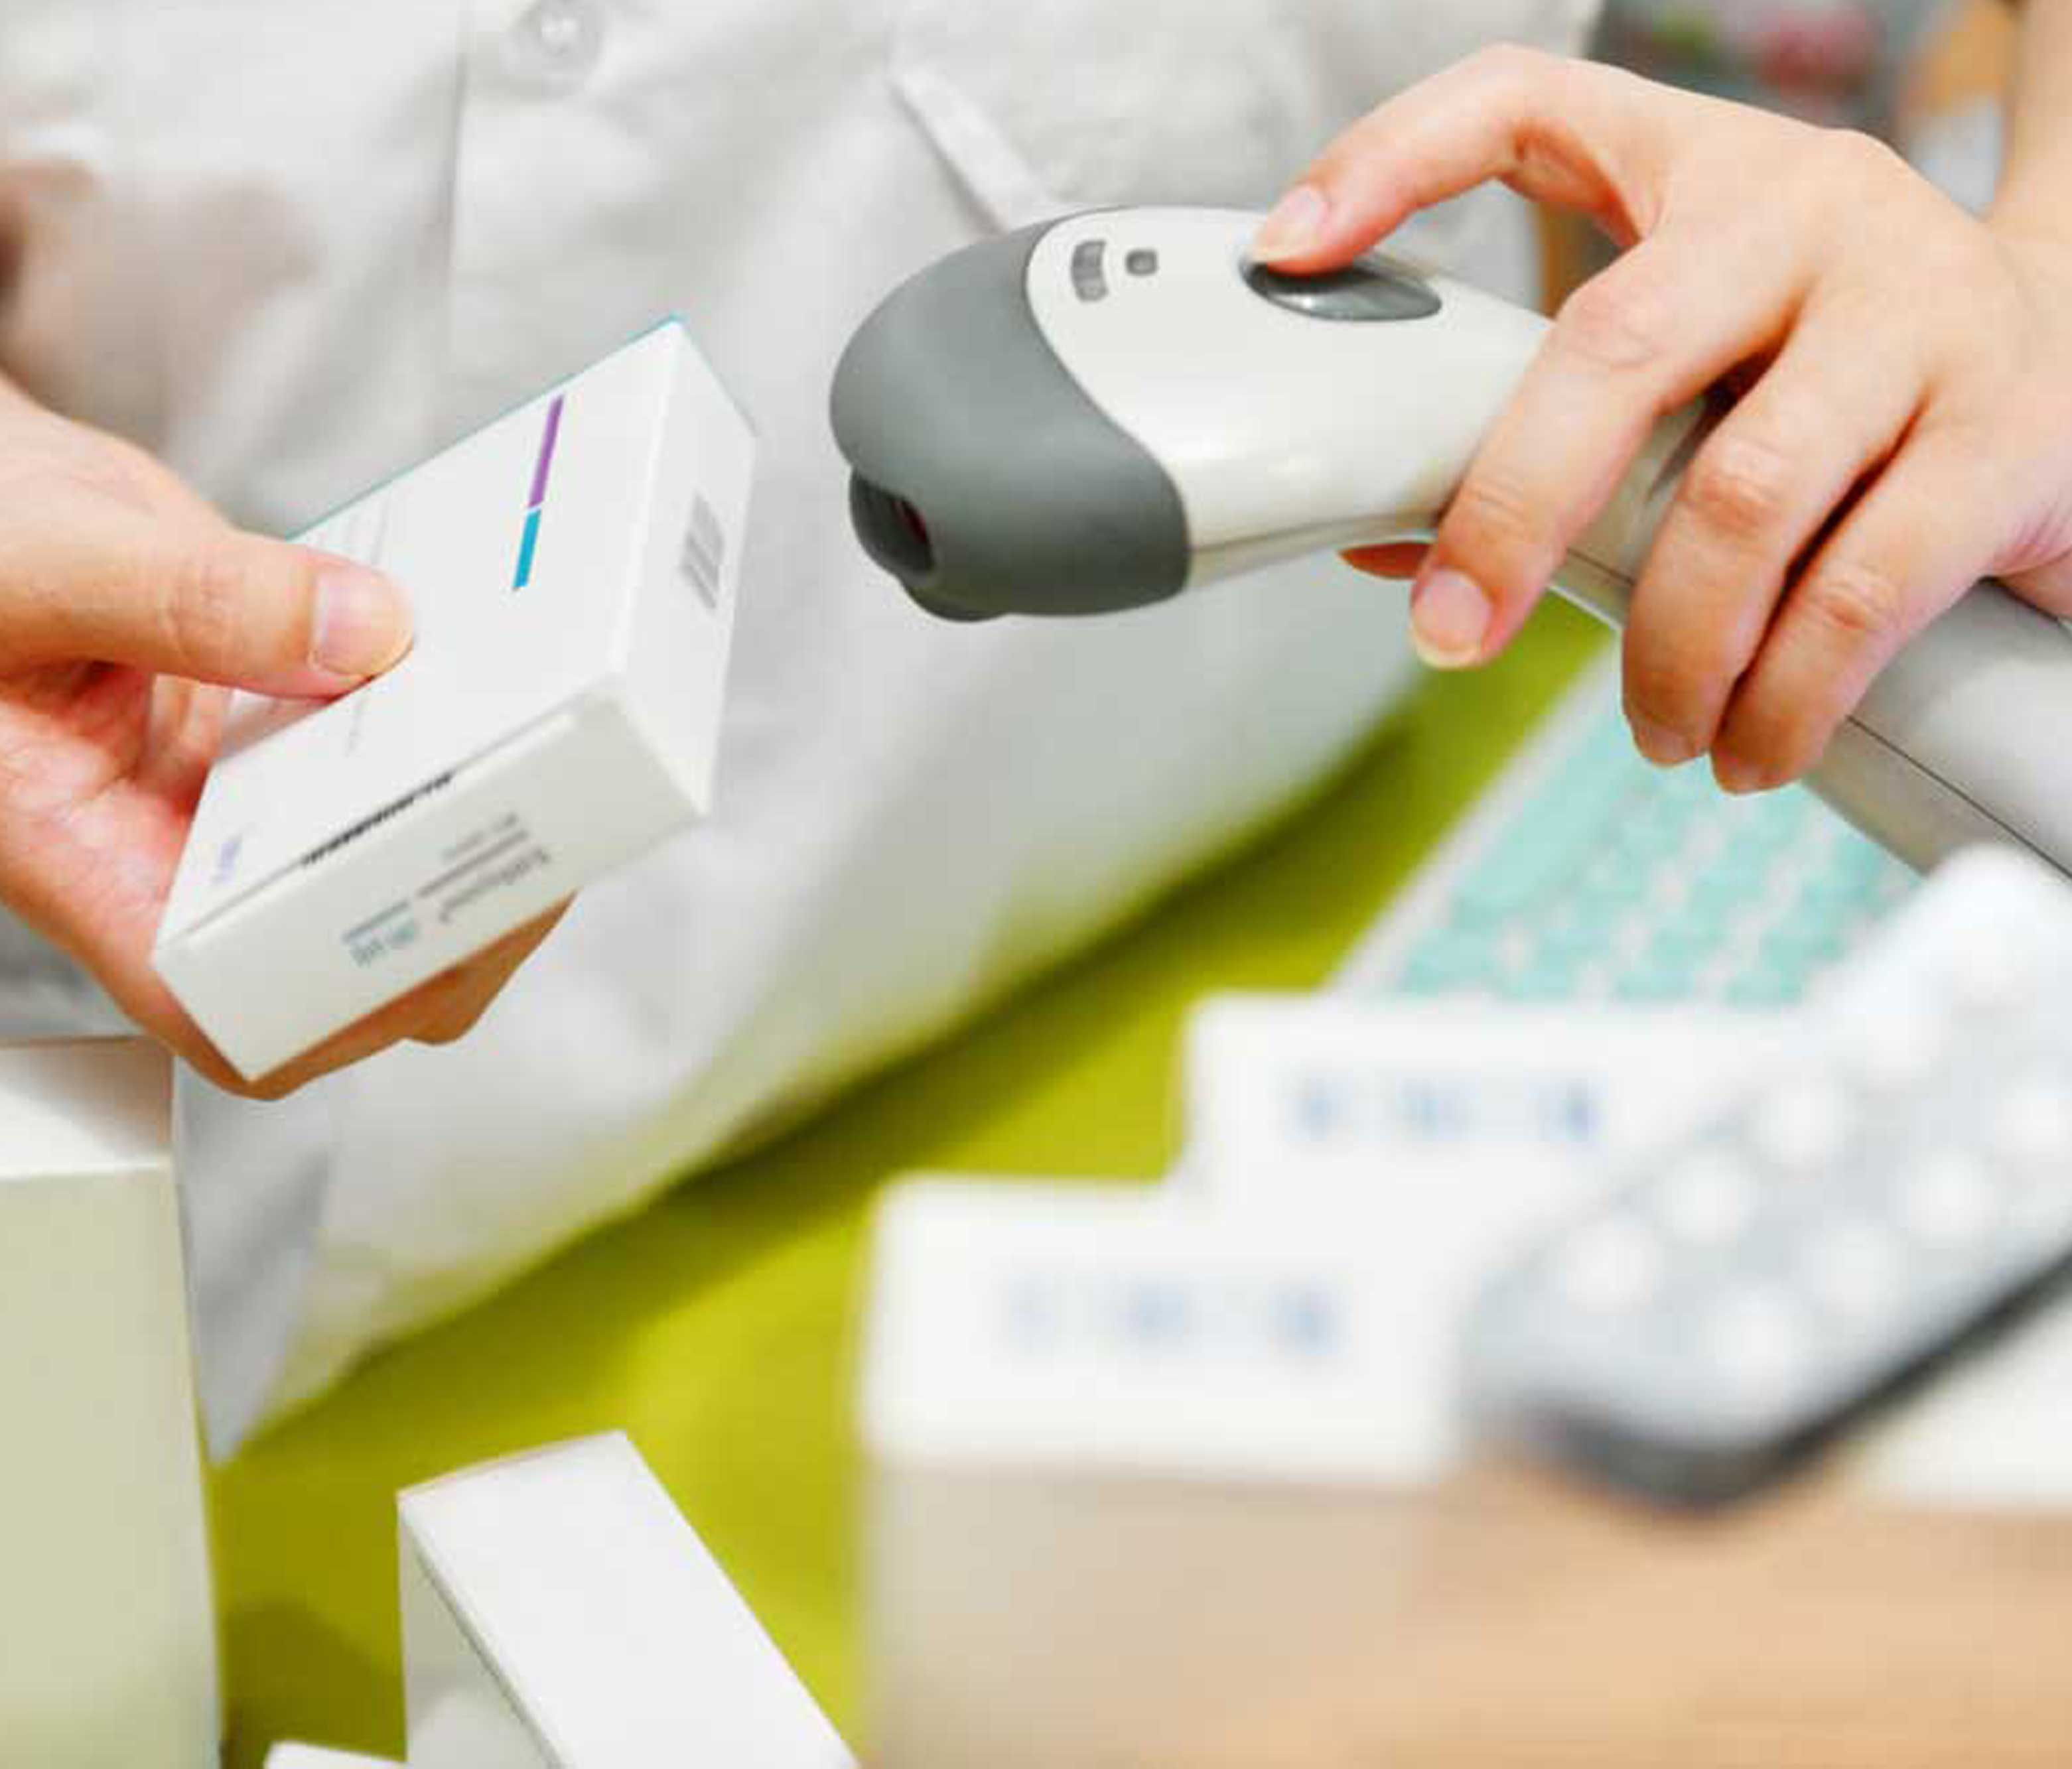 Barcode verifier being used in pharmacy